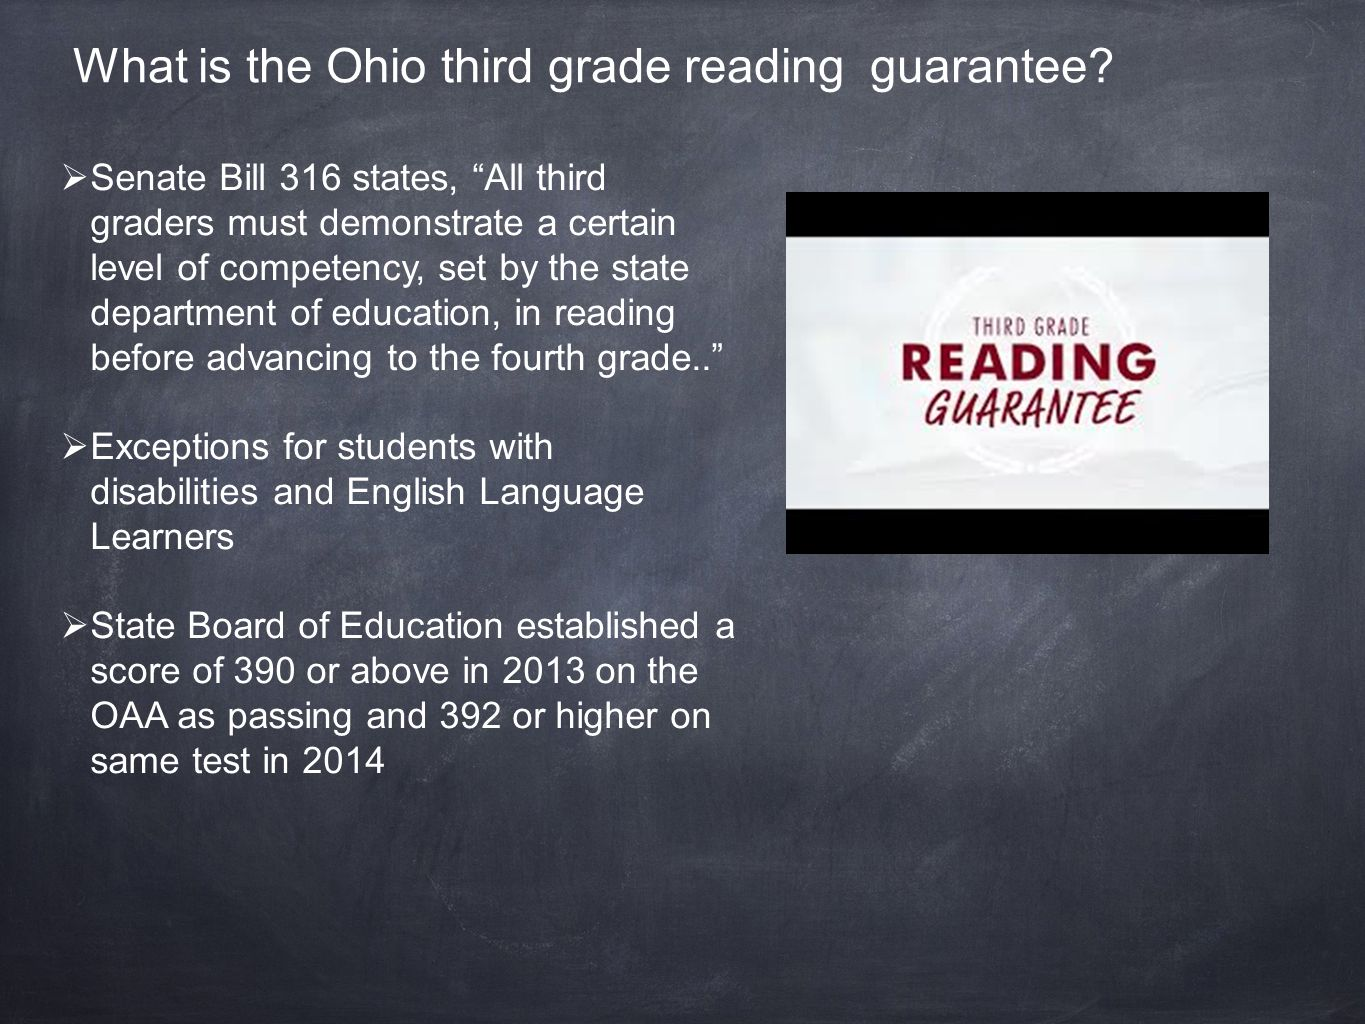 What is required by schools regarding the Ohio third grade reading guarantee.